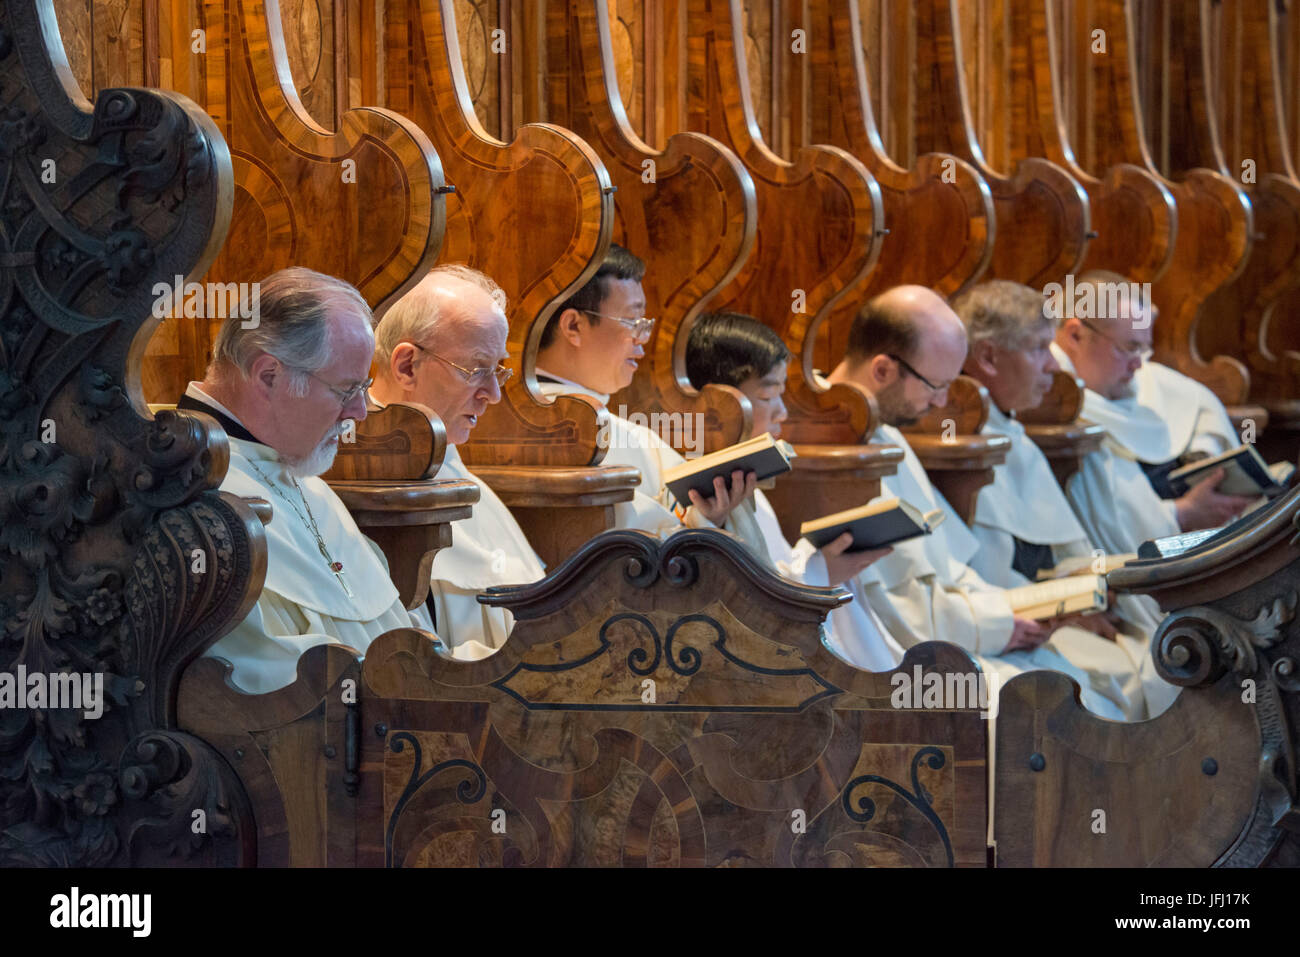 Austria, Tyrol, Stams, Abbey Stams, Cistercian cloister, canonical hour, compline - Stock Image